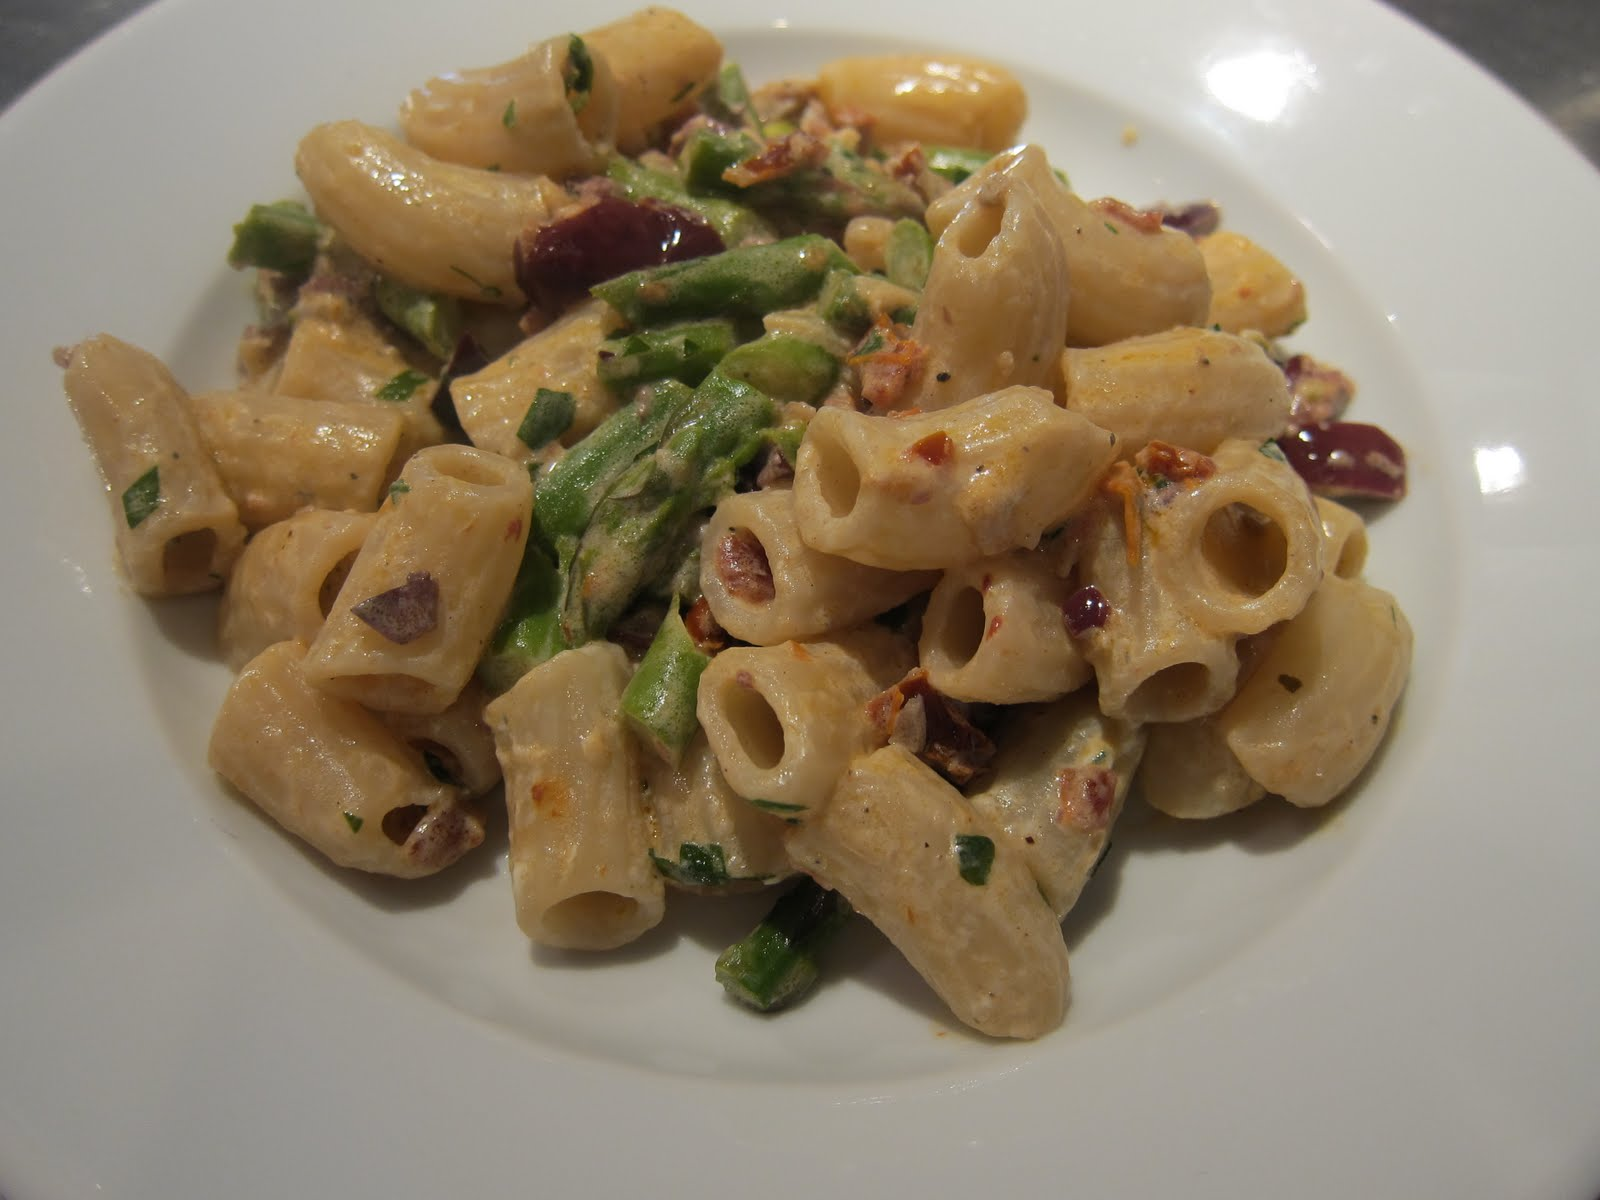 ... Kitchen: Asparagus, Sun-dried tomato, Olive and Goat Cheese Pasta